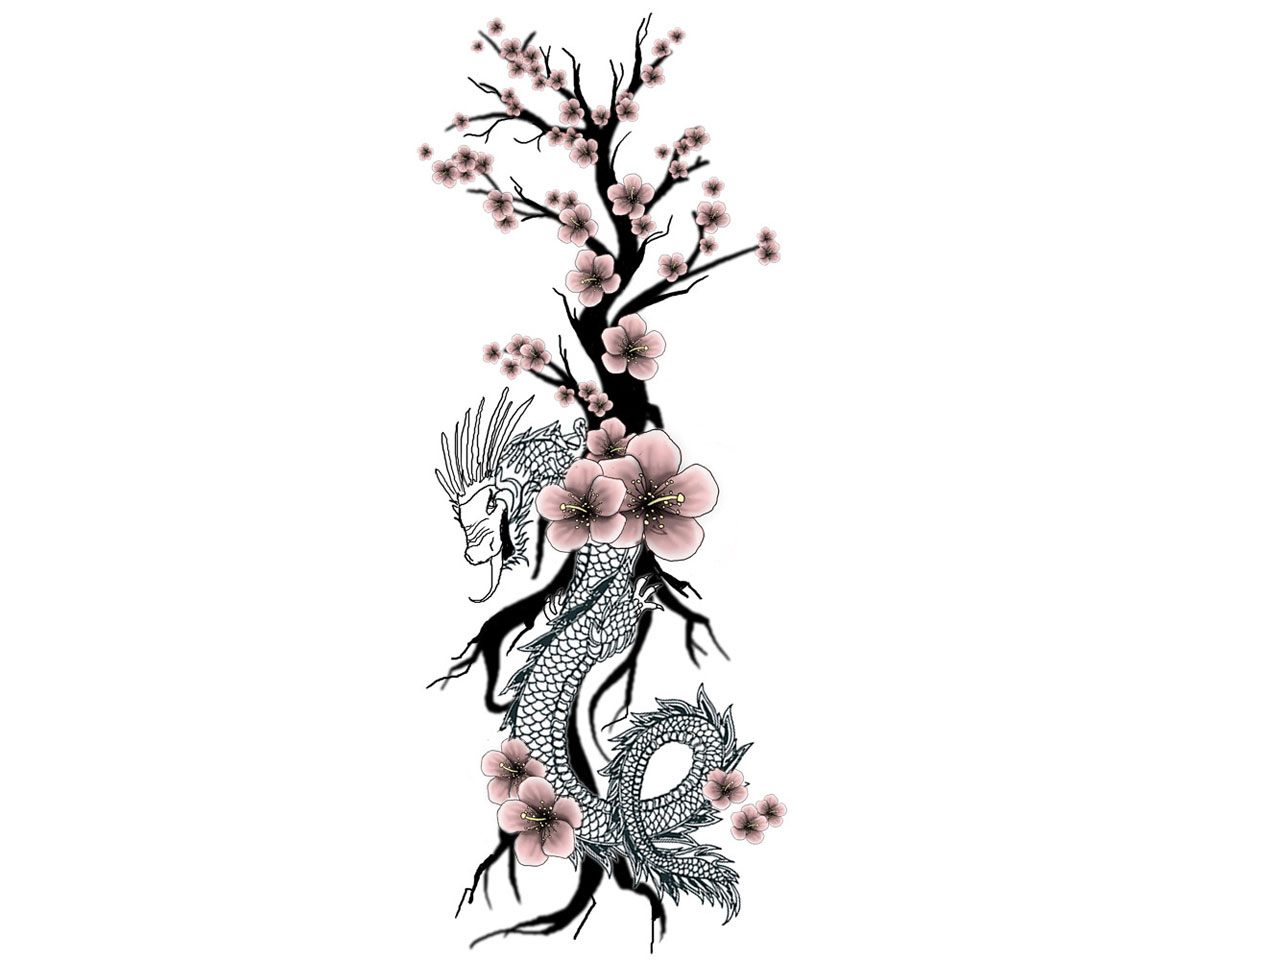 Panda On Cherry Blossom Tree Tattoo Design Photo - 3 2017: Real ...